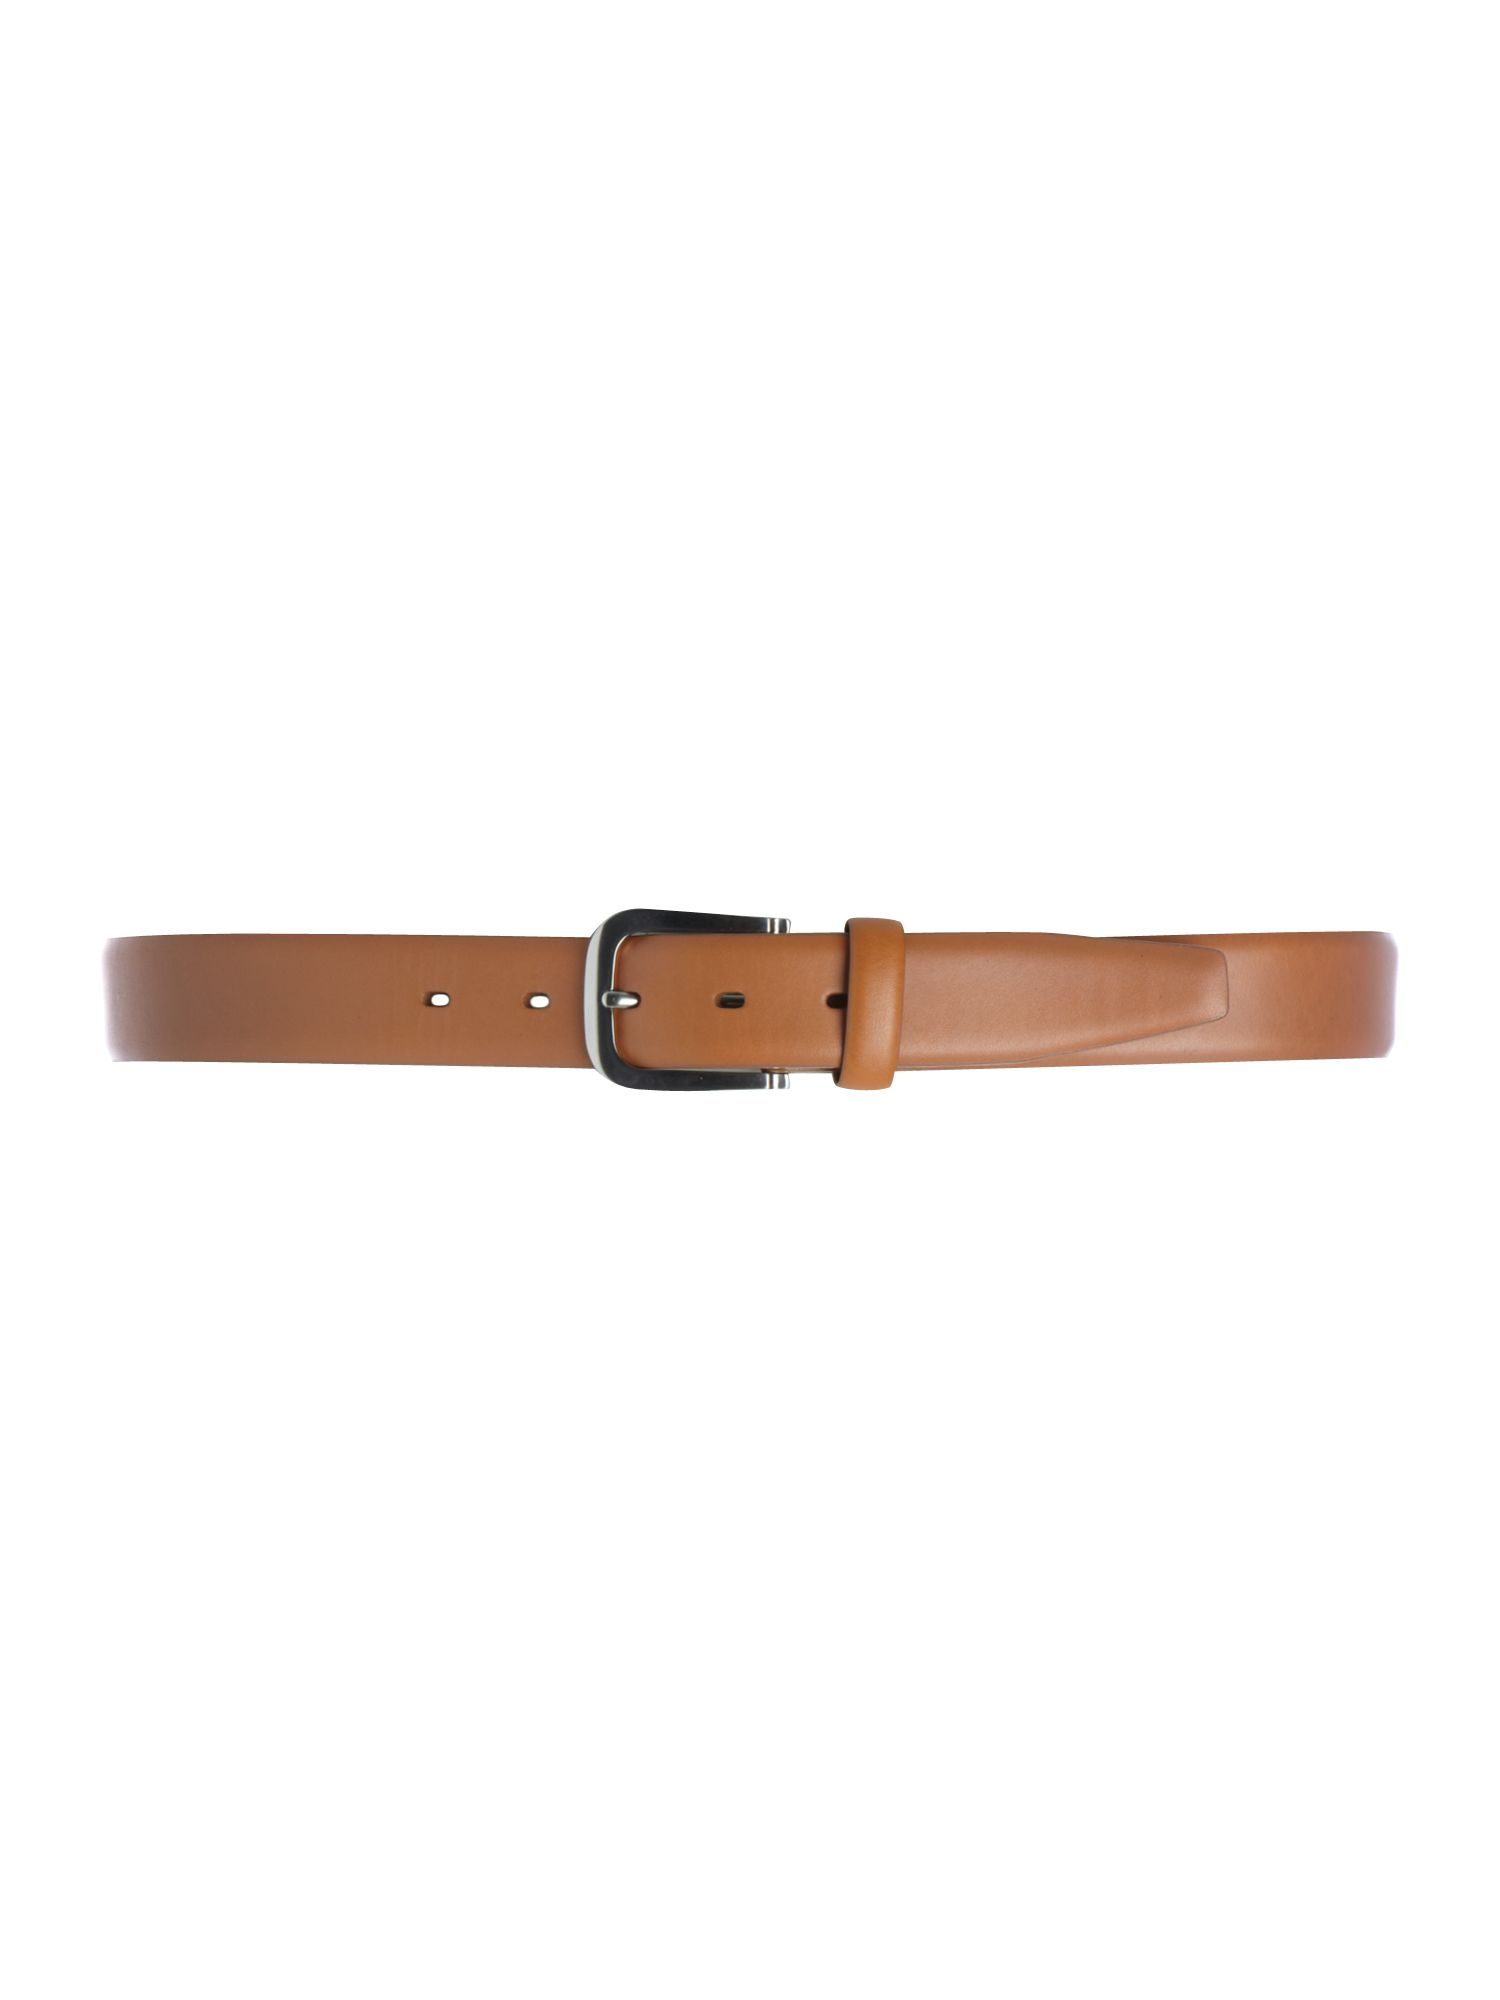 Classic feather edged belt